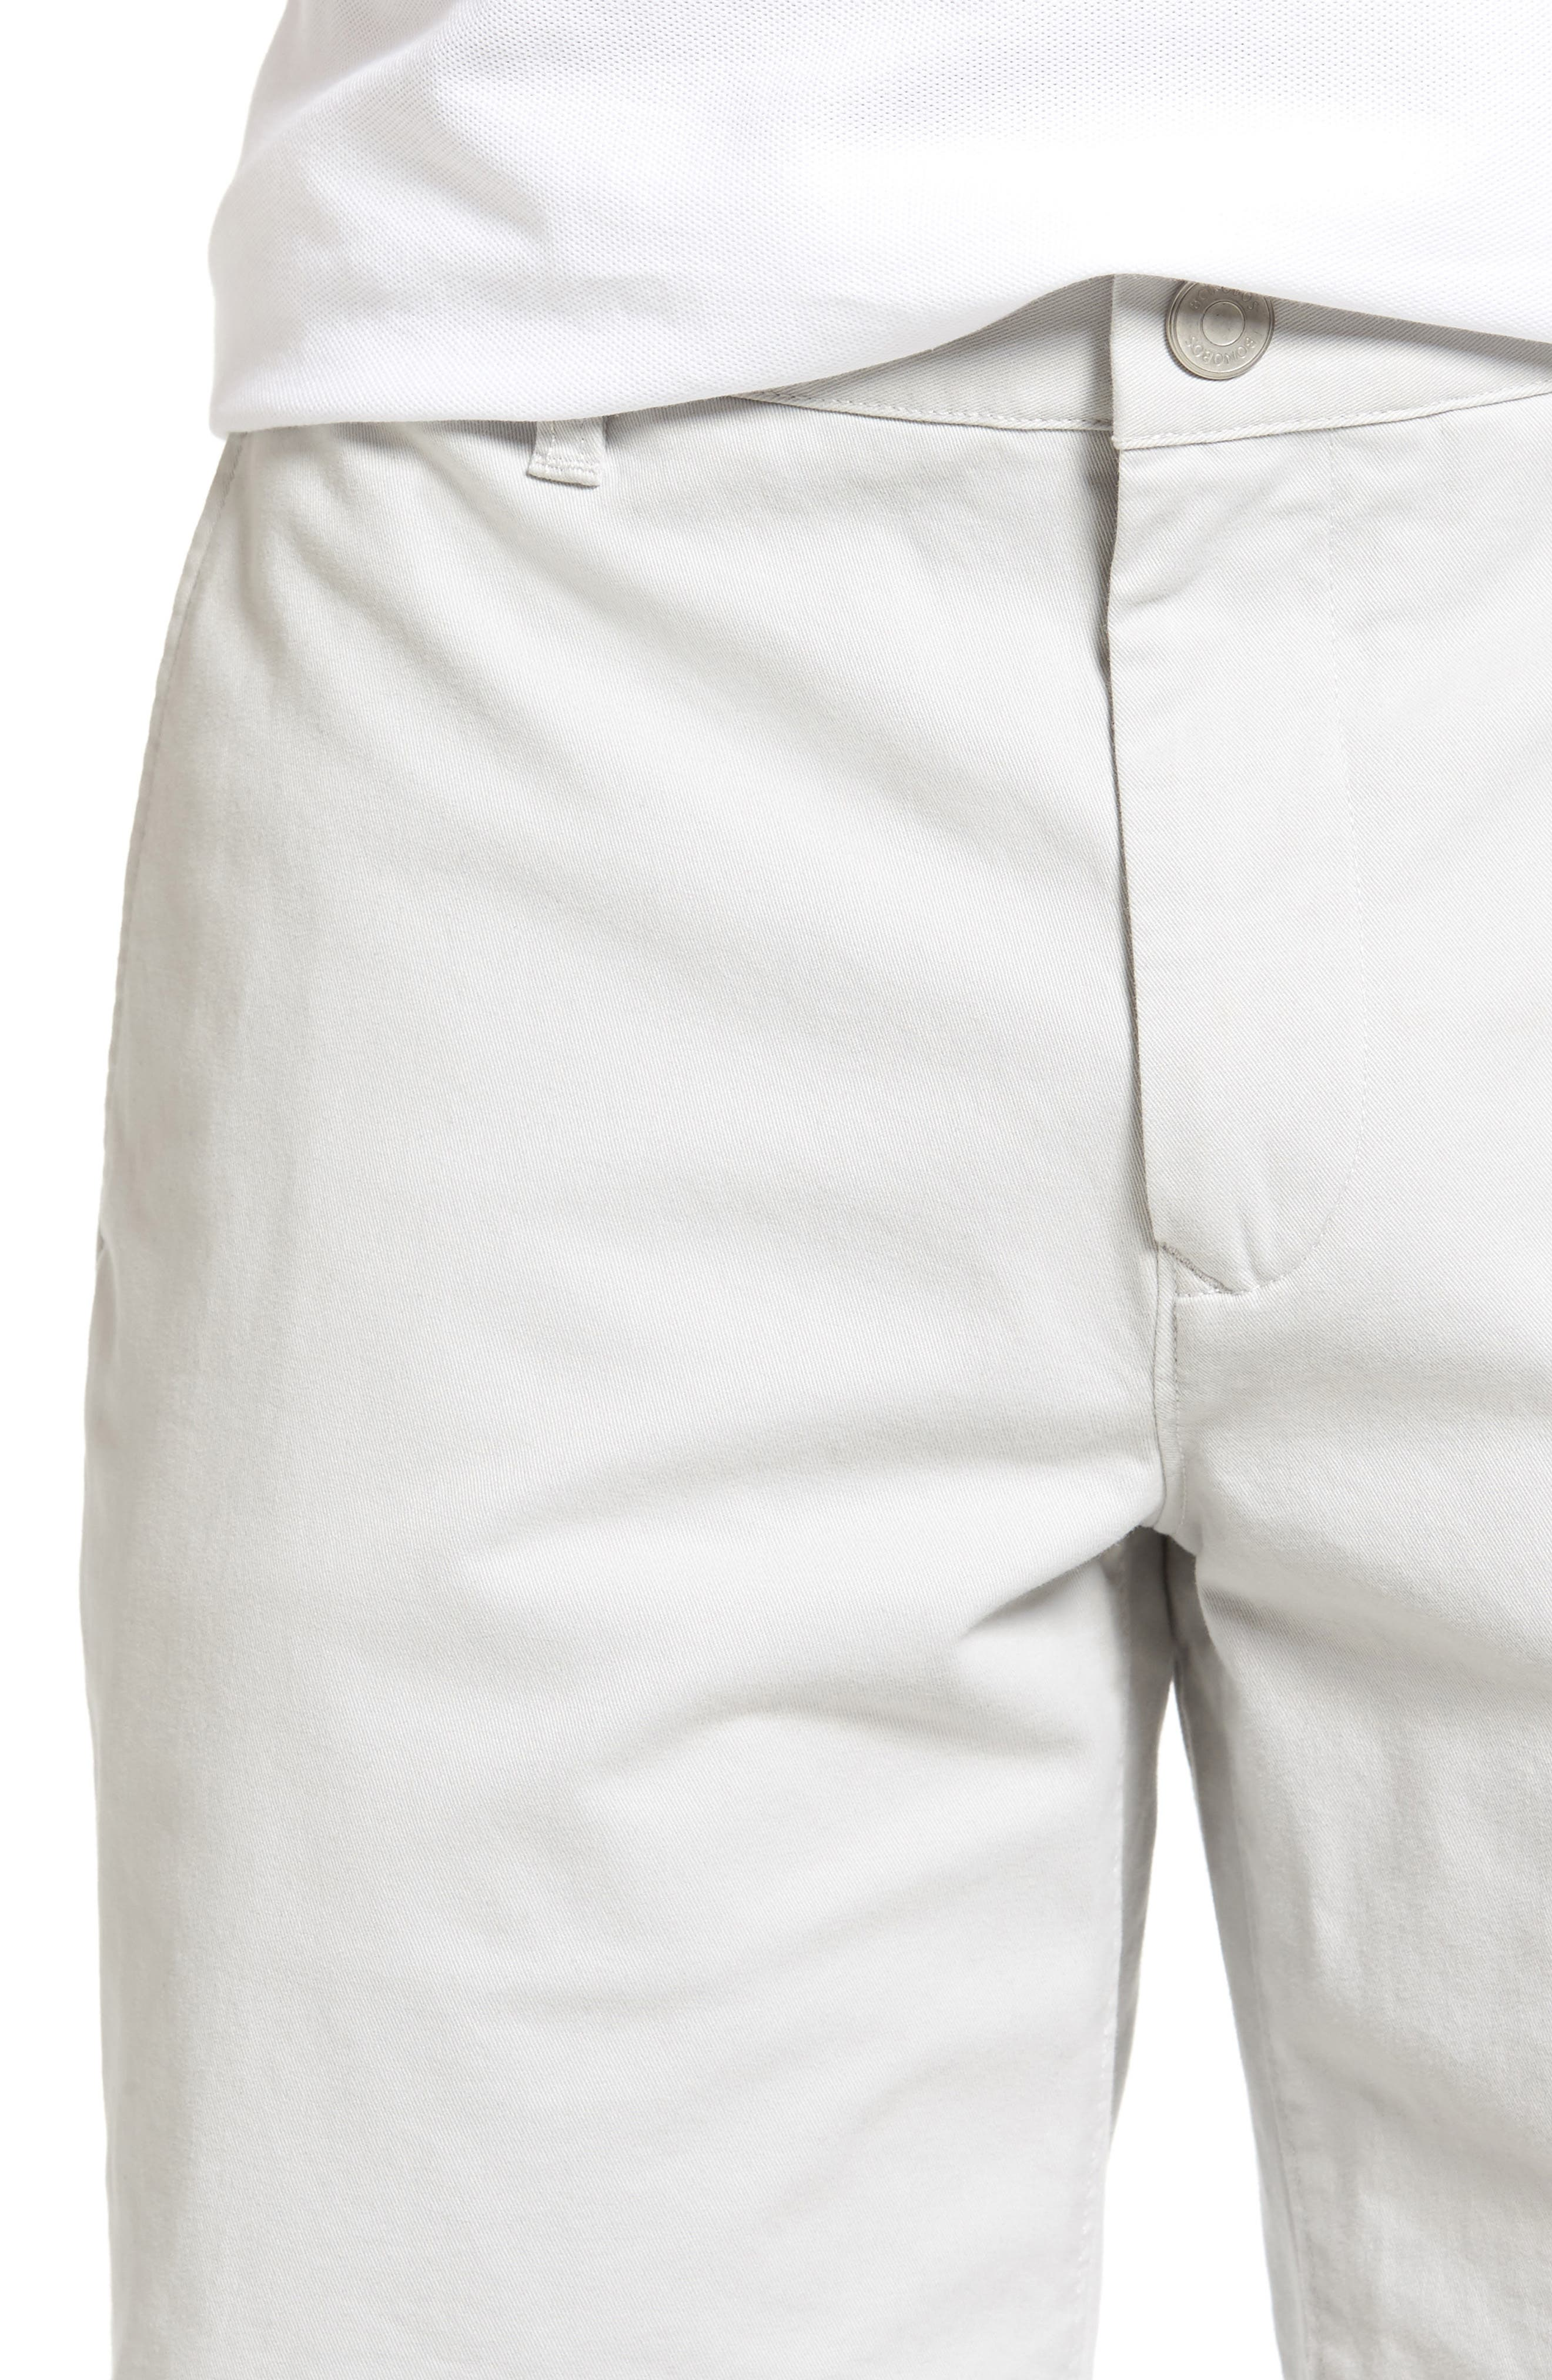 Stretch Washed Chino 7-Inch Shorts,                             Alternate thumbnail 80, color,